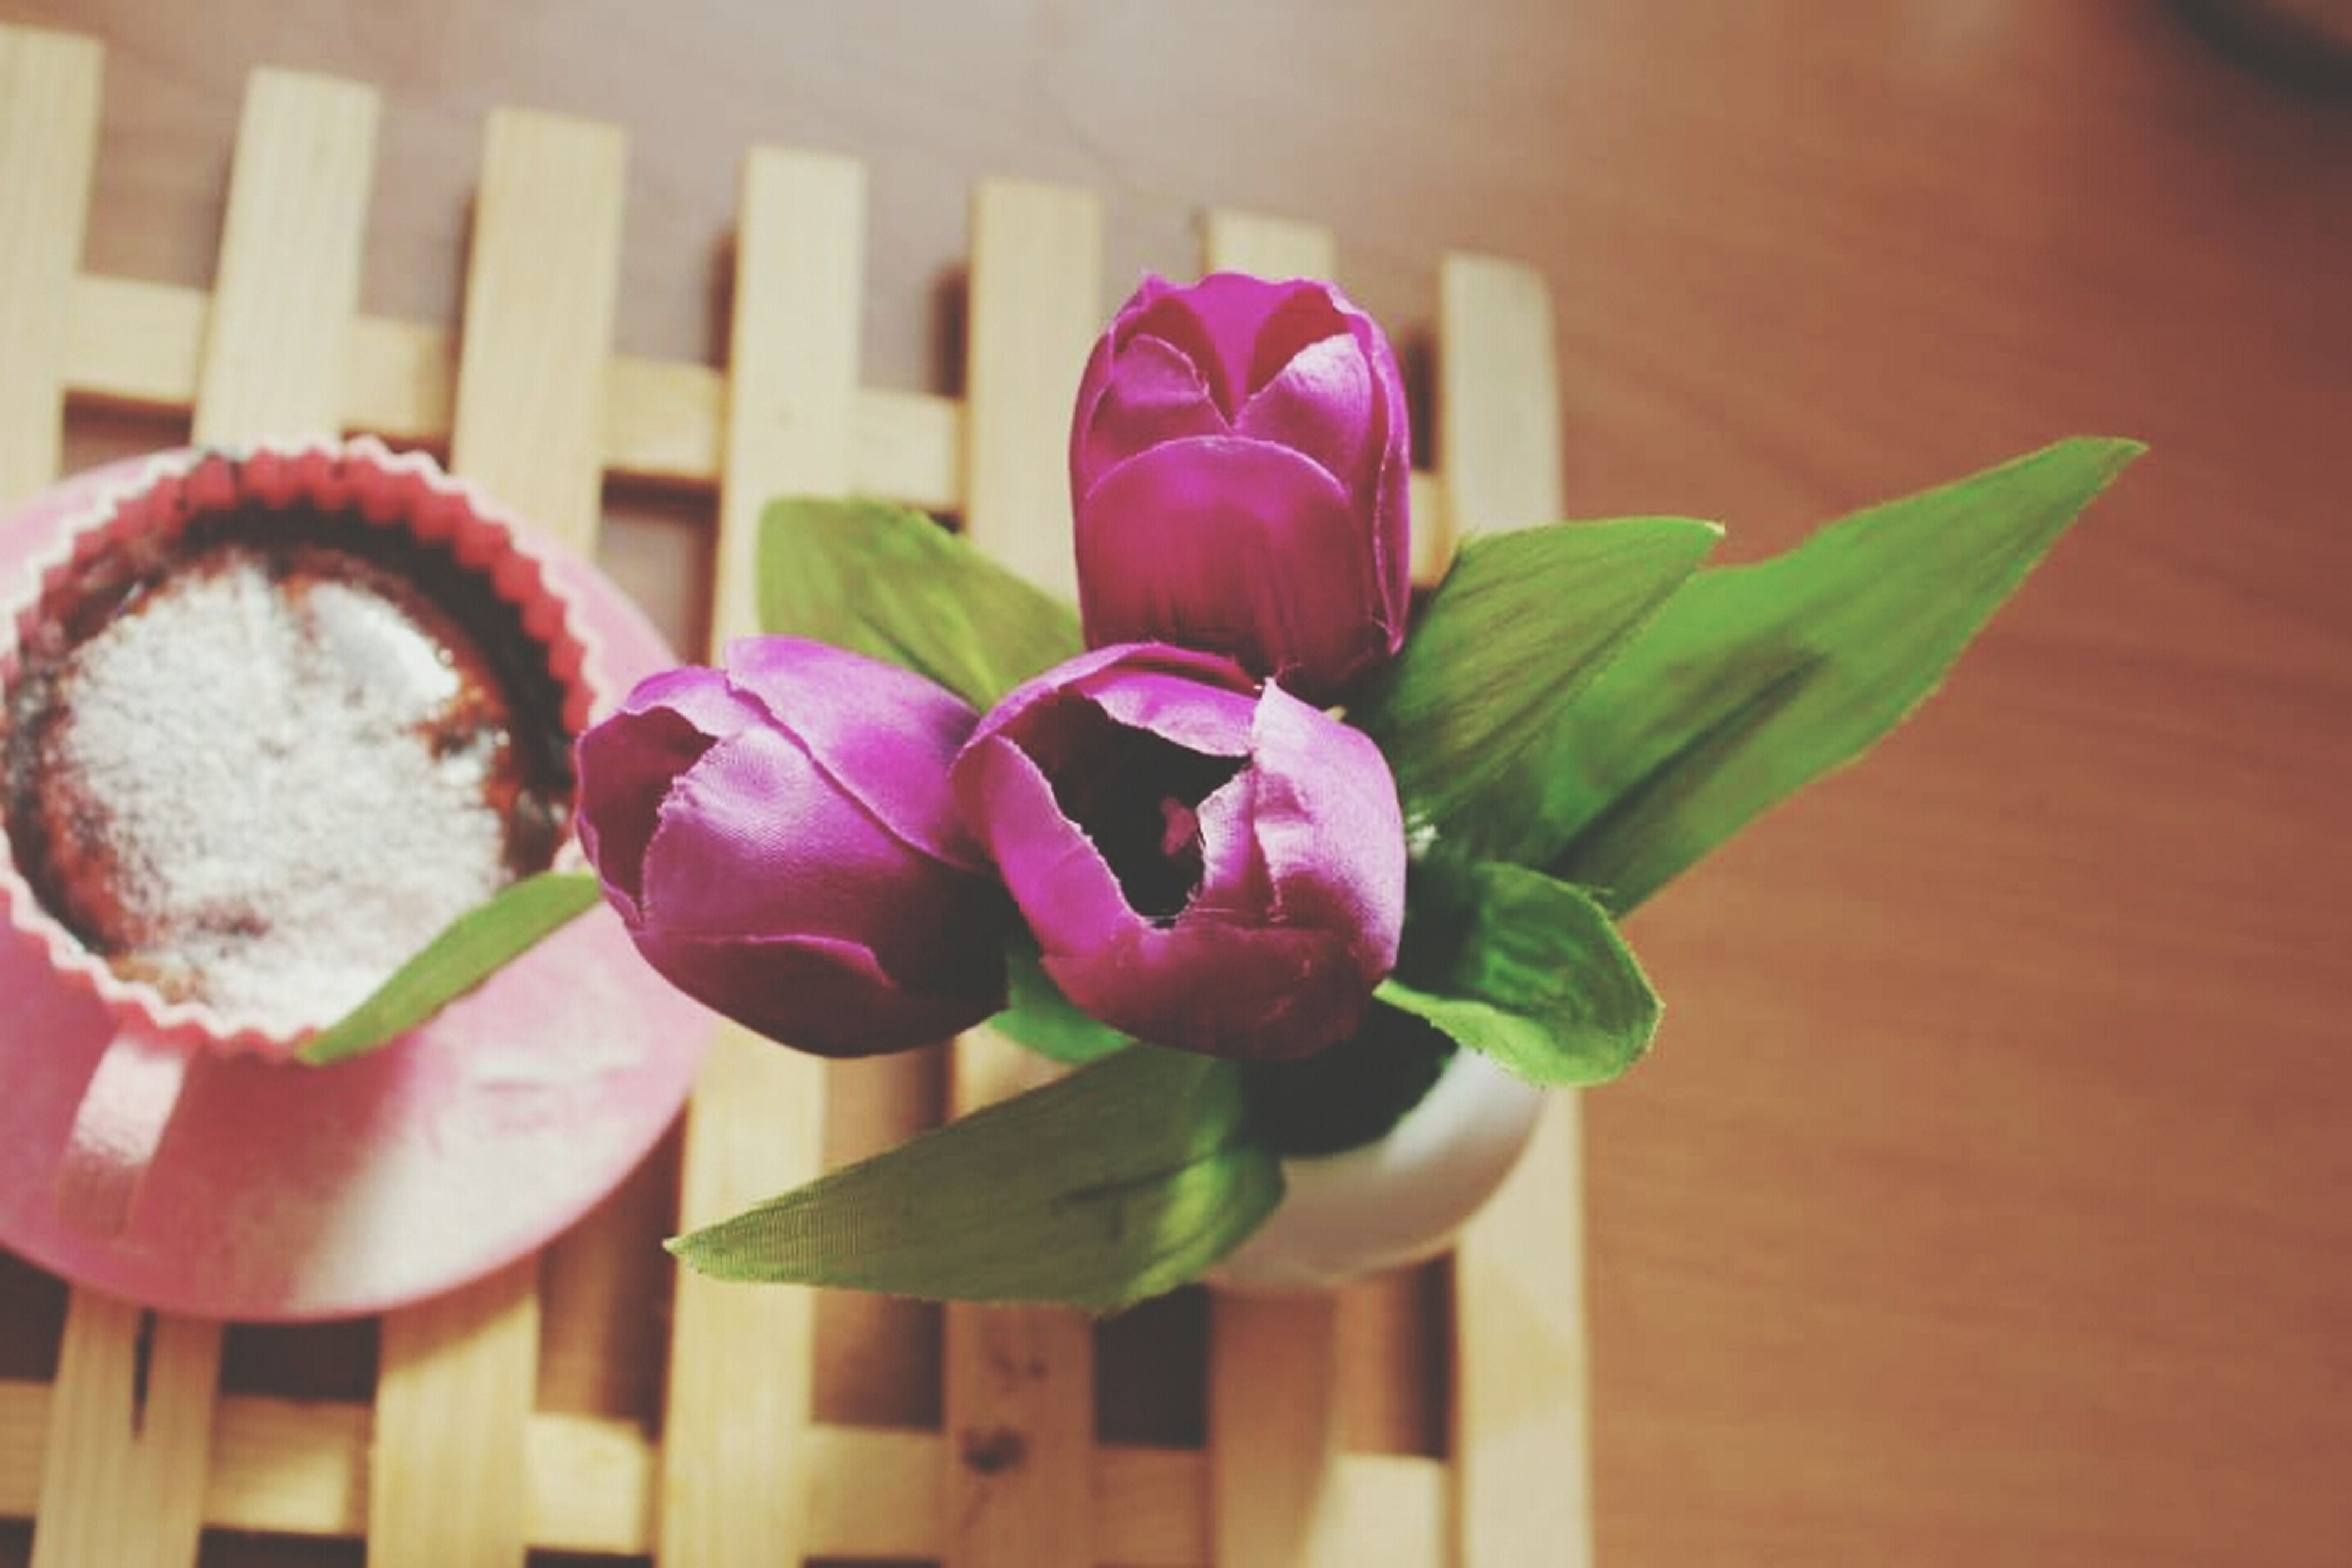 indoors, freshness, flower, table, close-up, pink color, still life, focus on foreground, wood - material, petal, no people, fragility, selective focus, home interior, vase, decoration, flower head, plant, nature, day